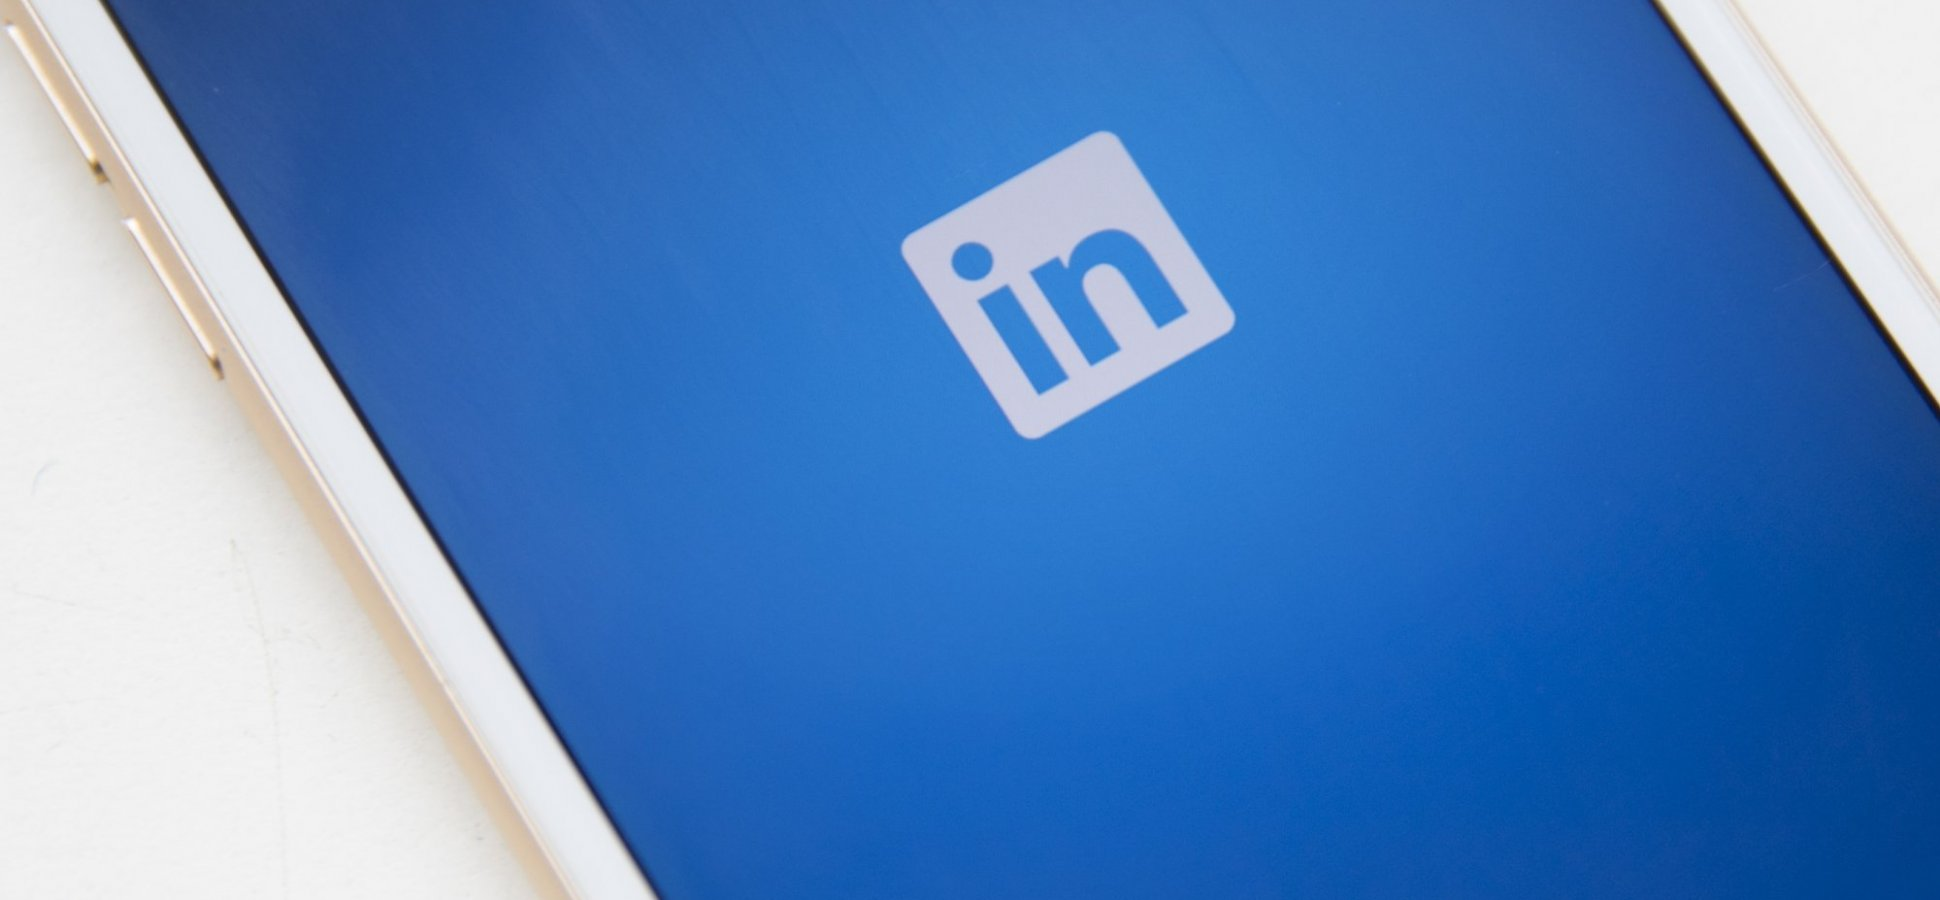 7 Tactics to Make Your LinkedIn Profile Shine (That You Wouldn't Use on a Resume)